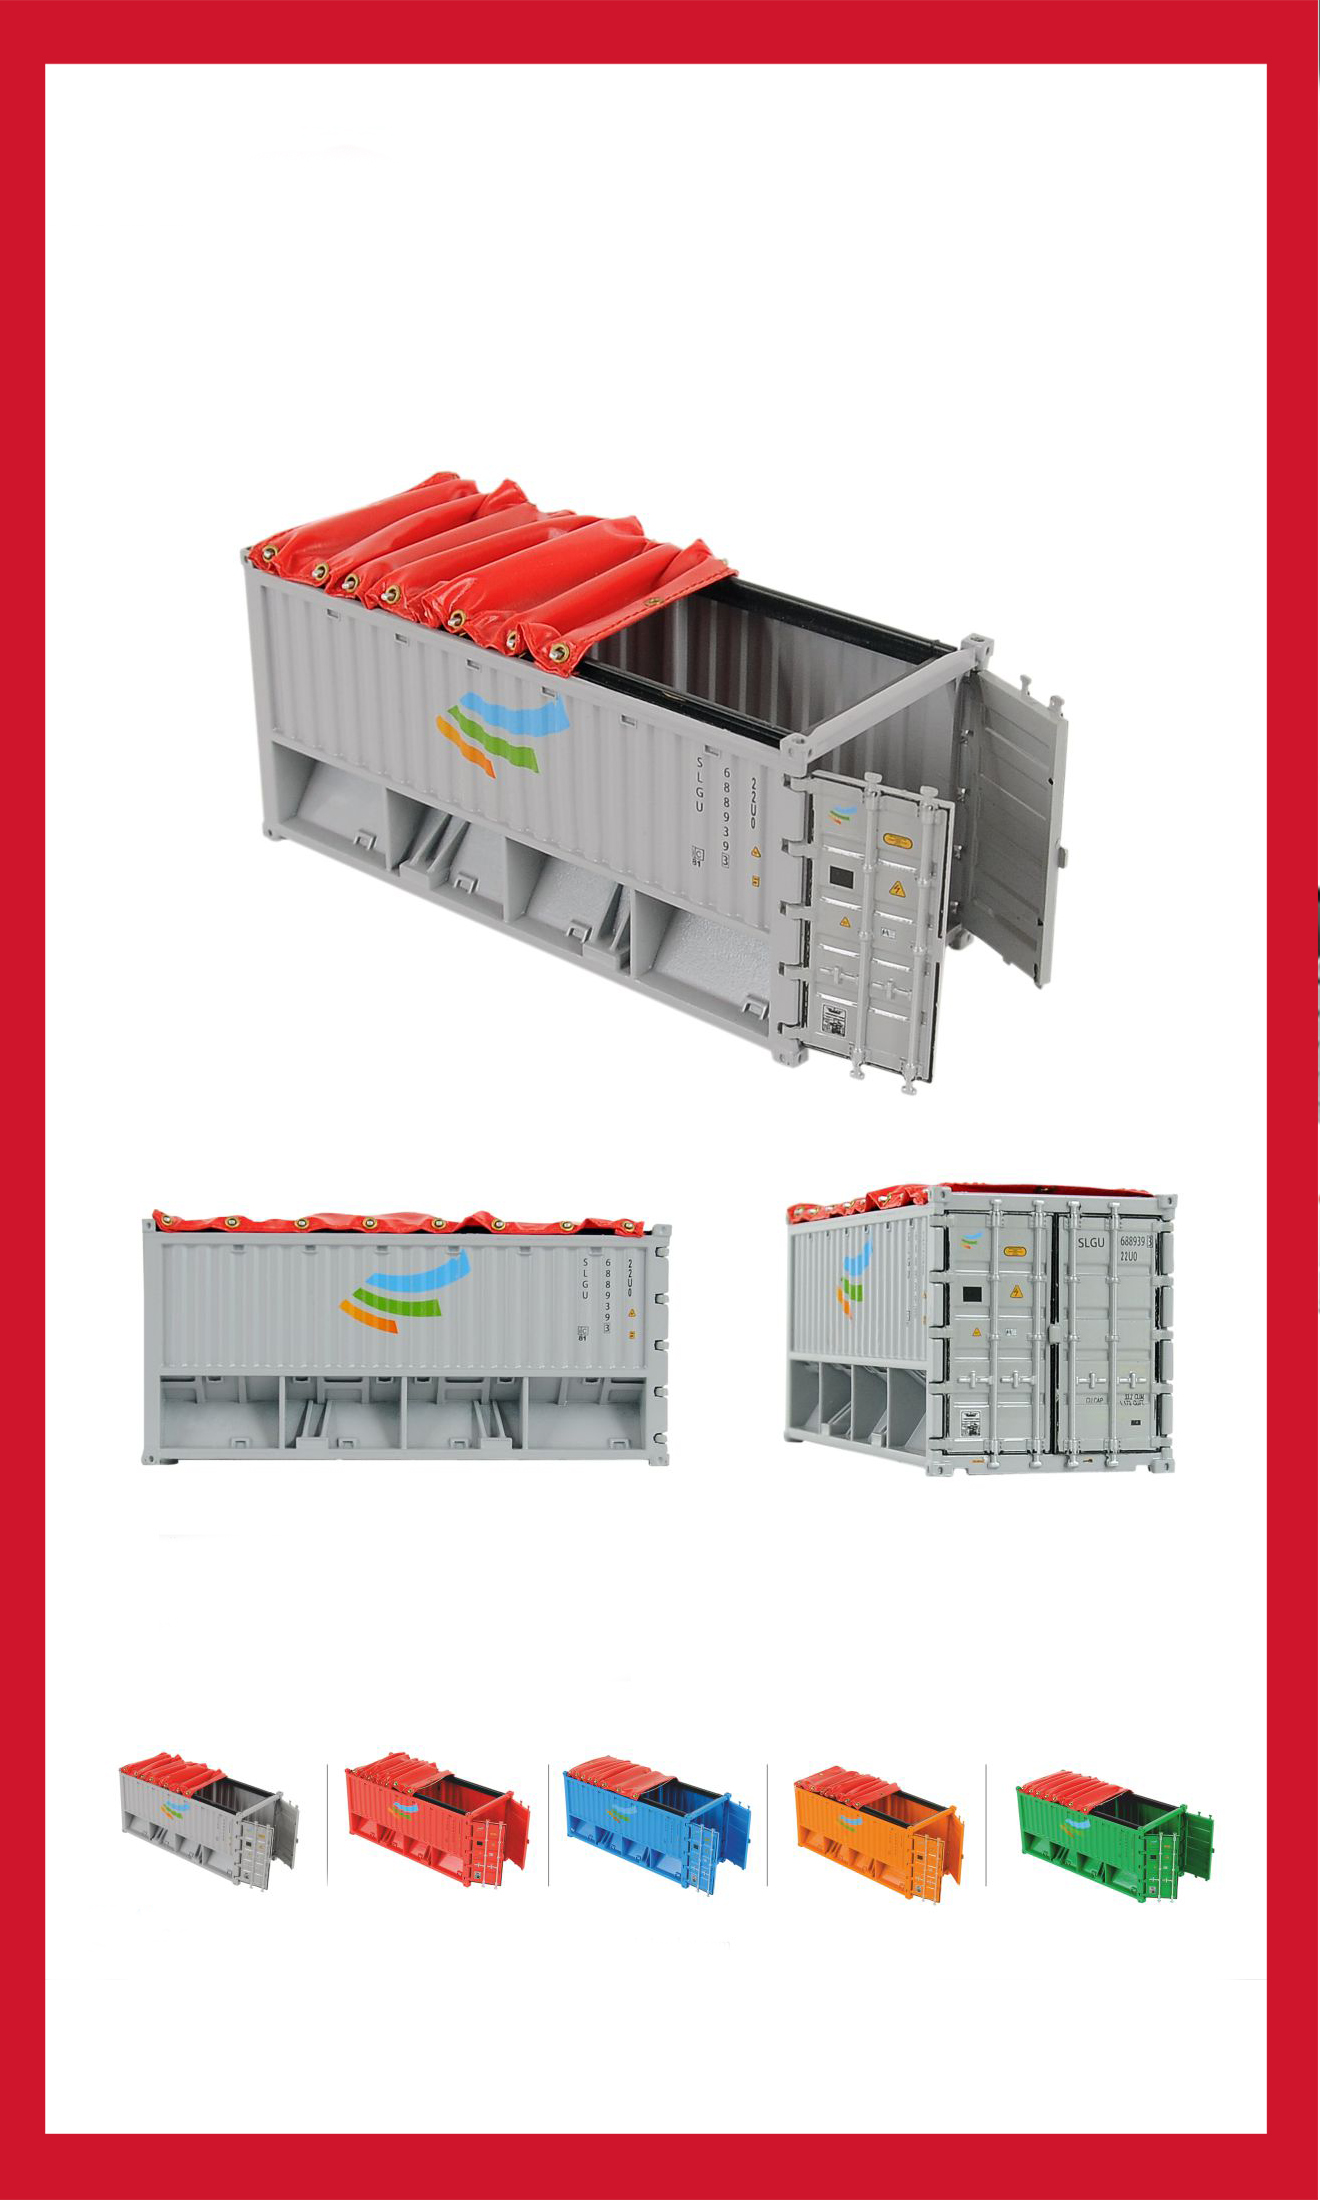 20' Opentop Container models